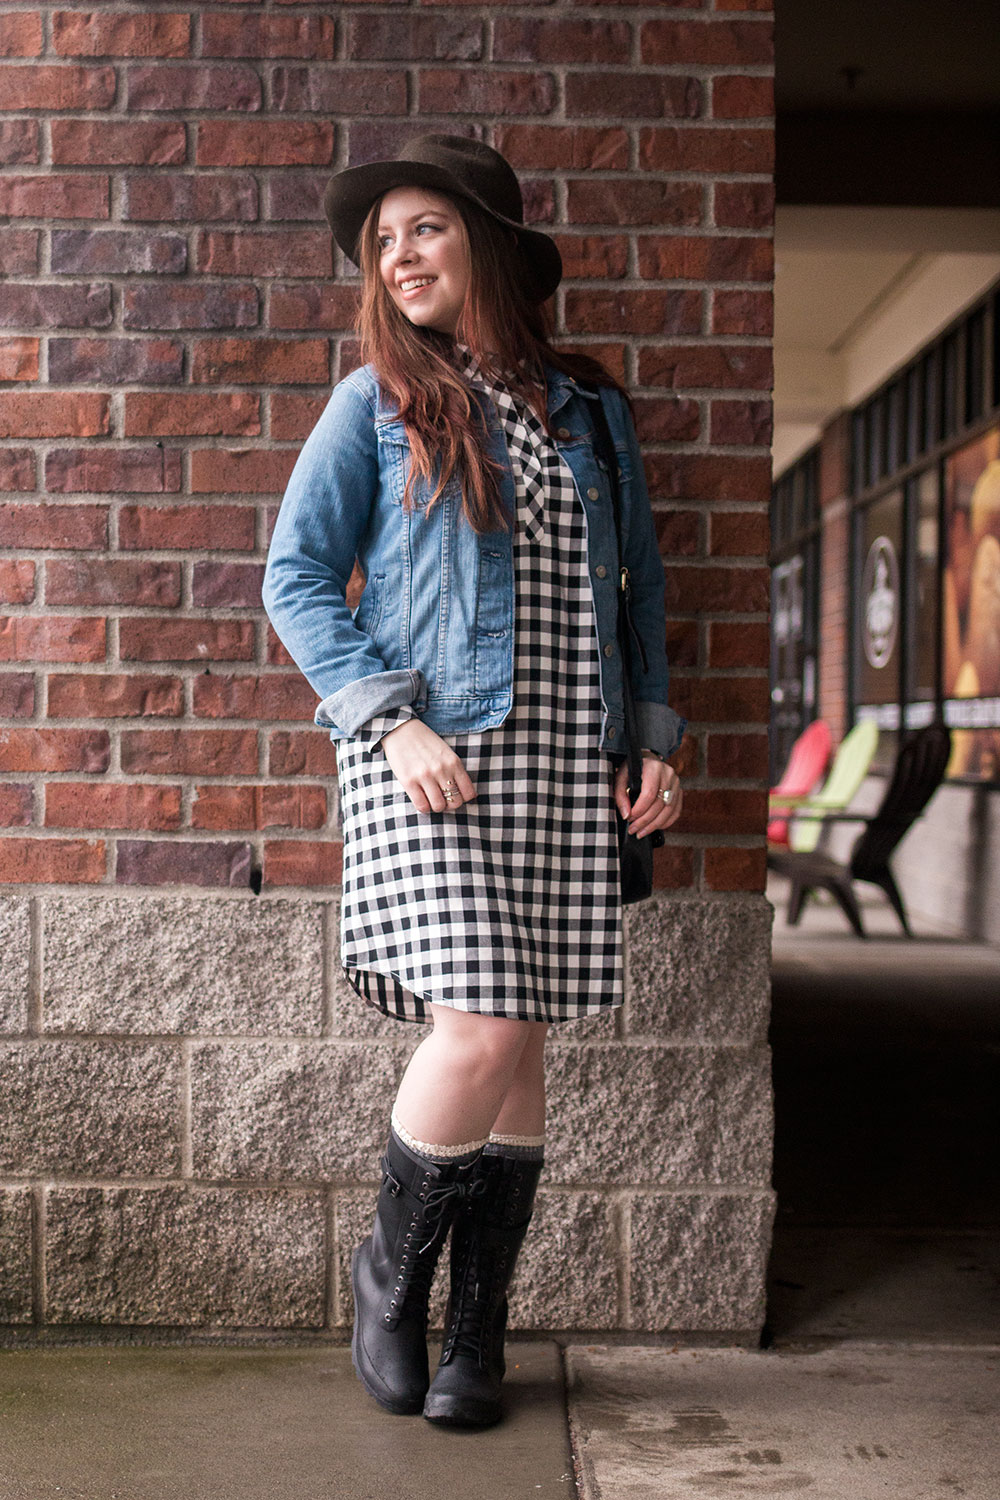 Rainy Day Outfits // Hello Rigby Seattle Fashion Blog